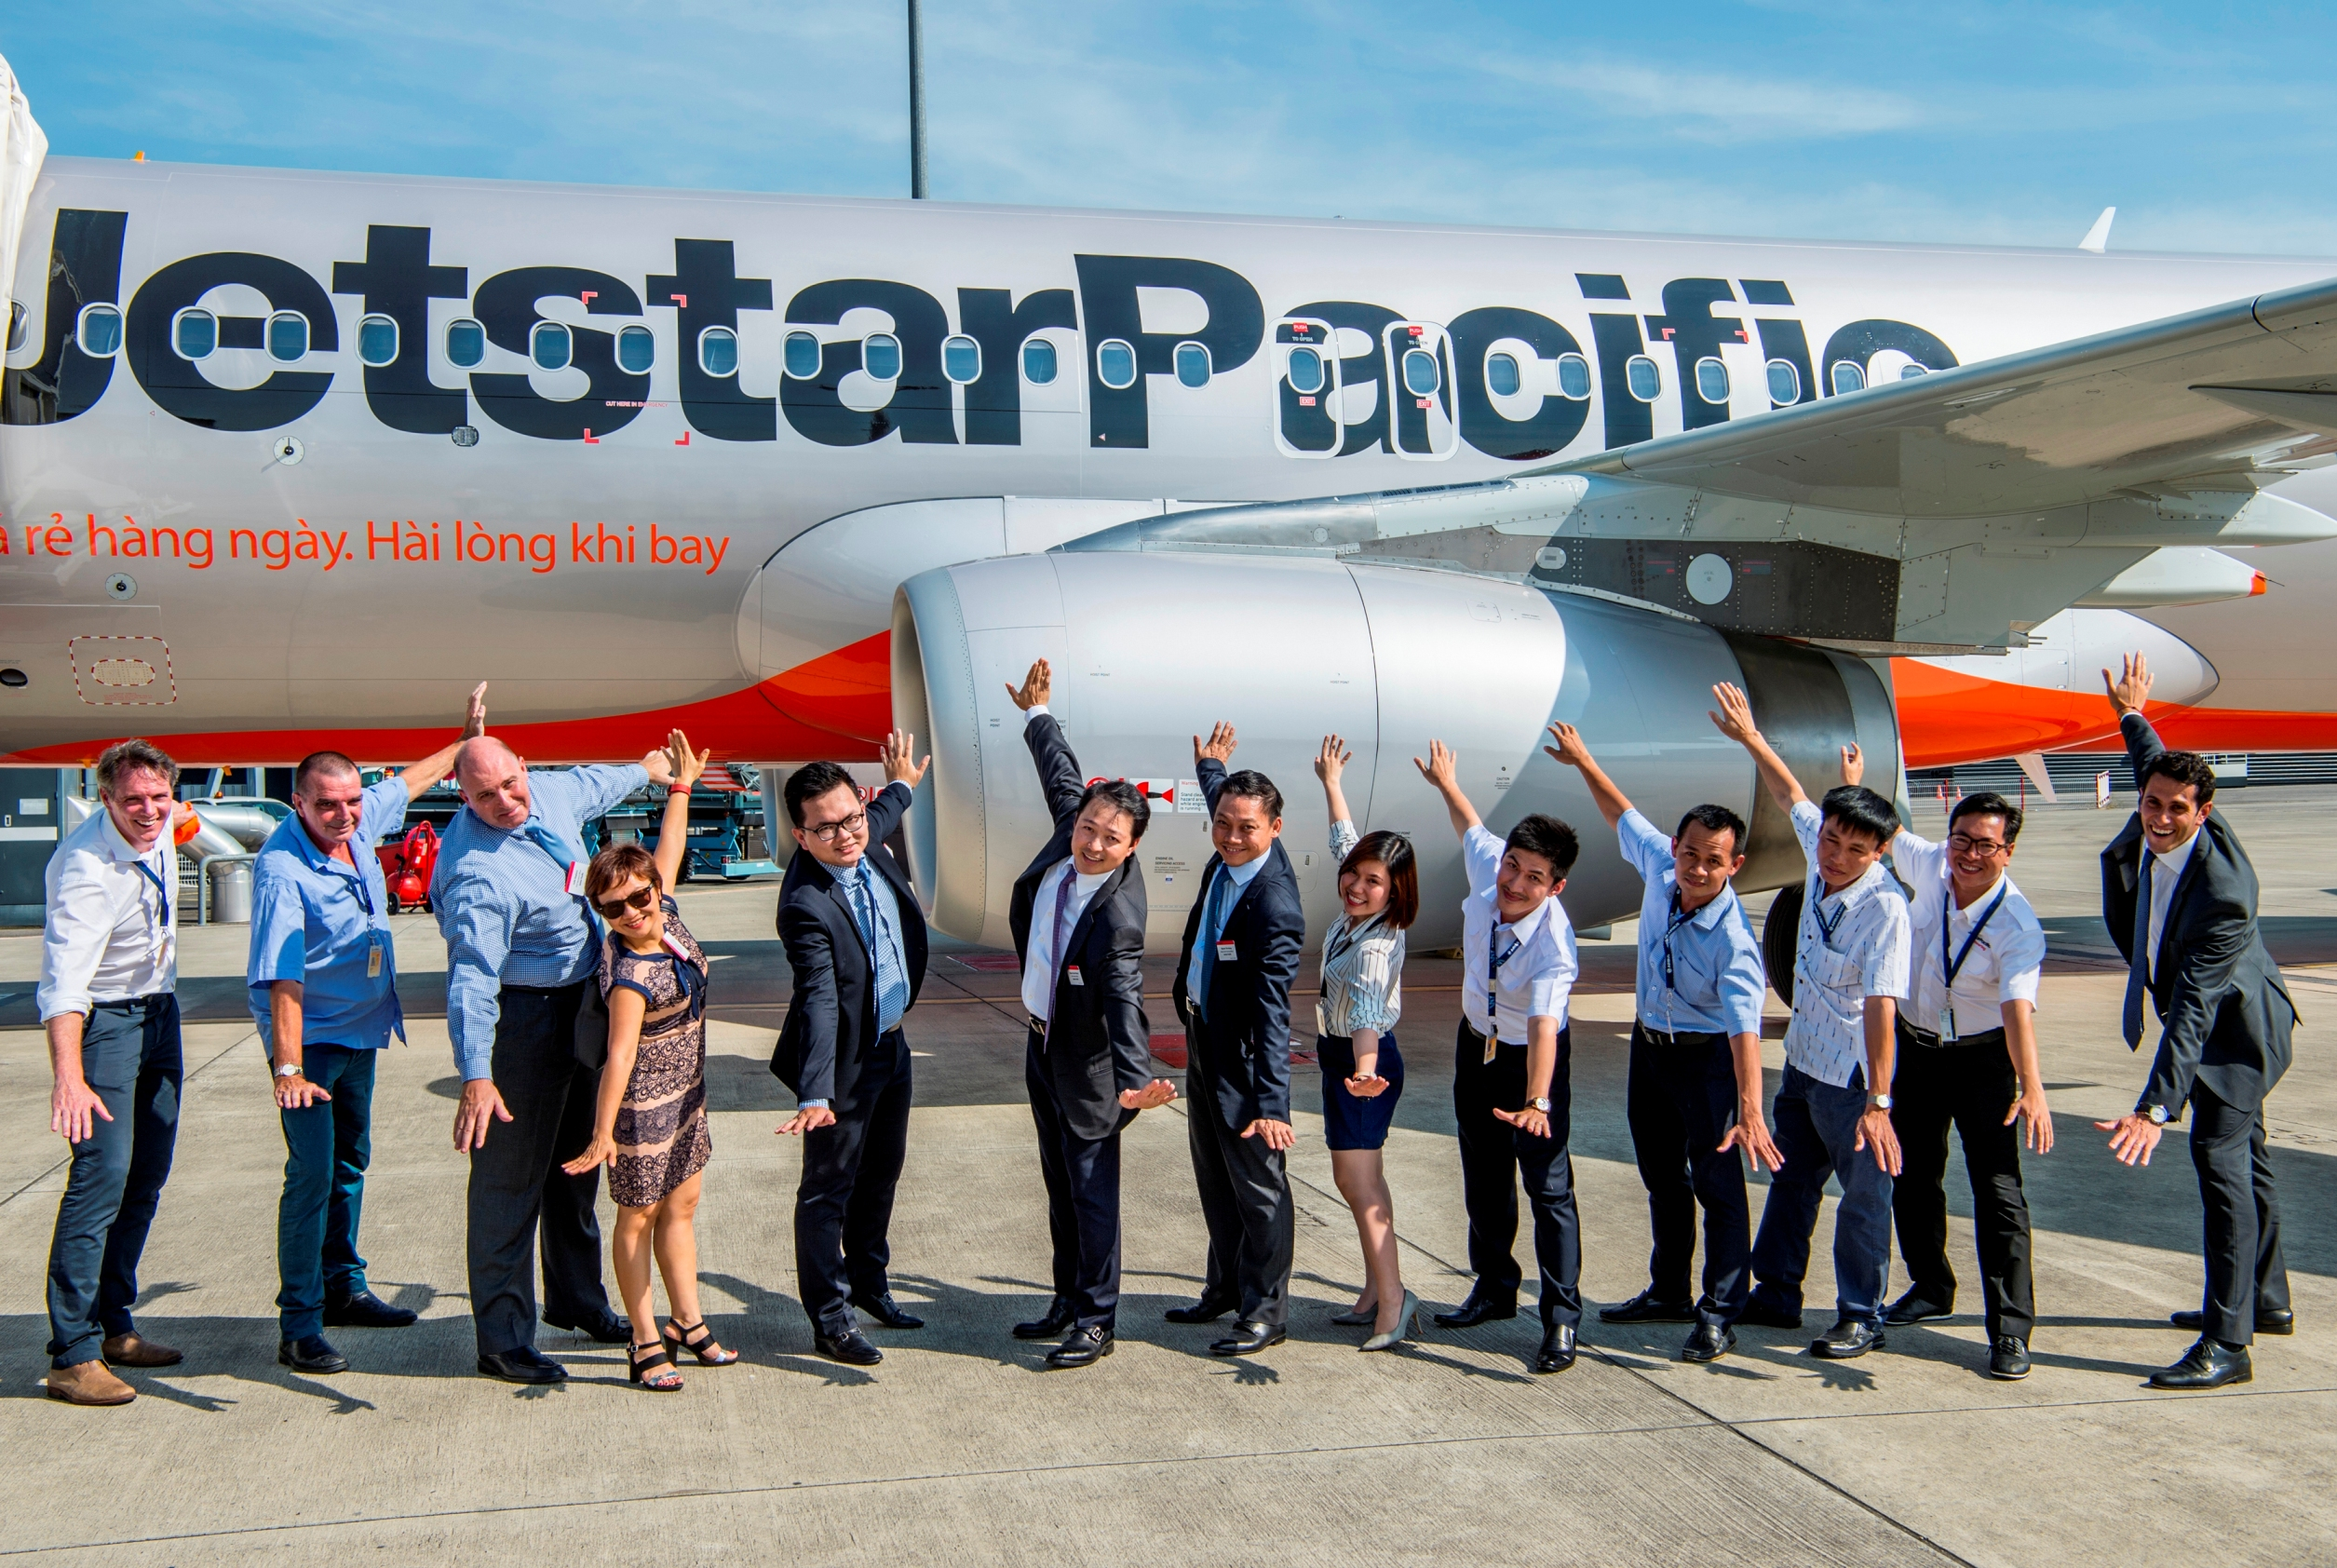 141742-1st-a320-jetstarpacific-delivery-0131